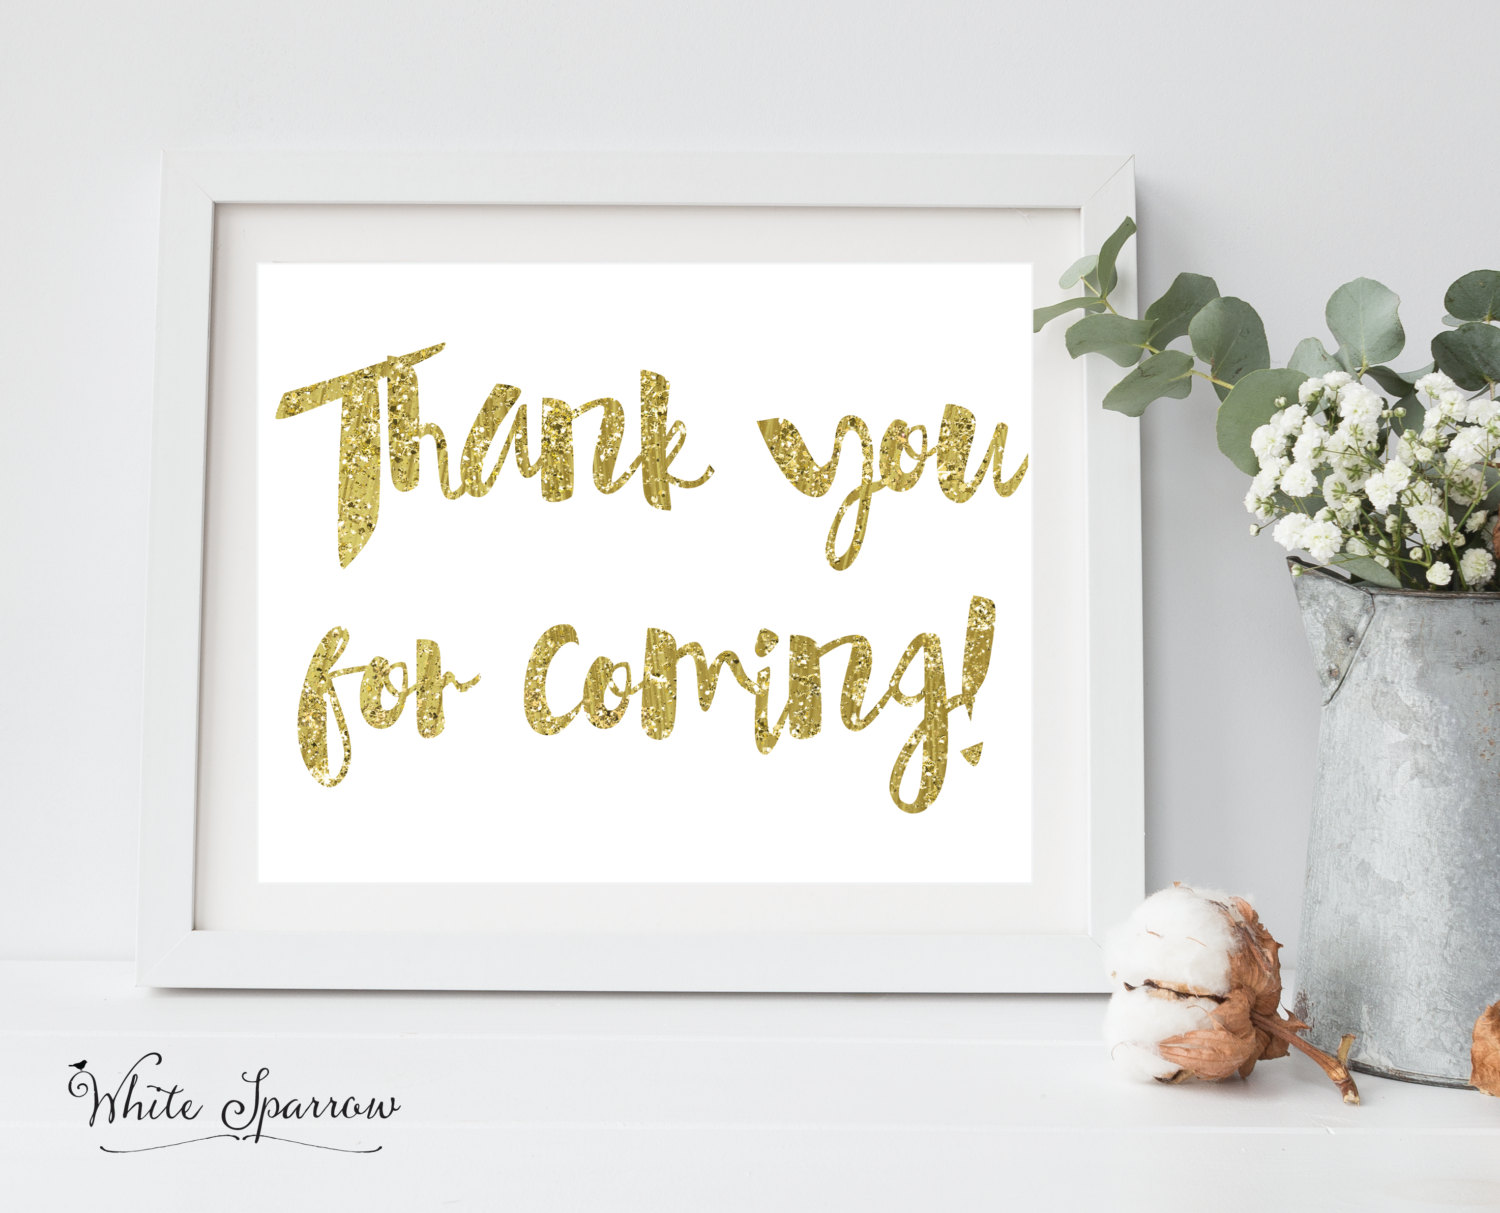 Bridal Shower Decorations Bridal Shower Ideas Gold Bridal Shower Decor Gold Bridal Shower Signs For Bridal Shower Thank You For Coming Sold By